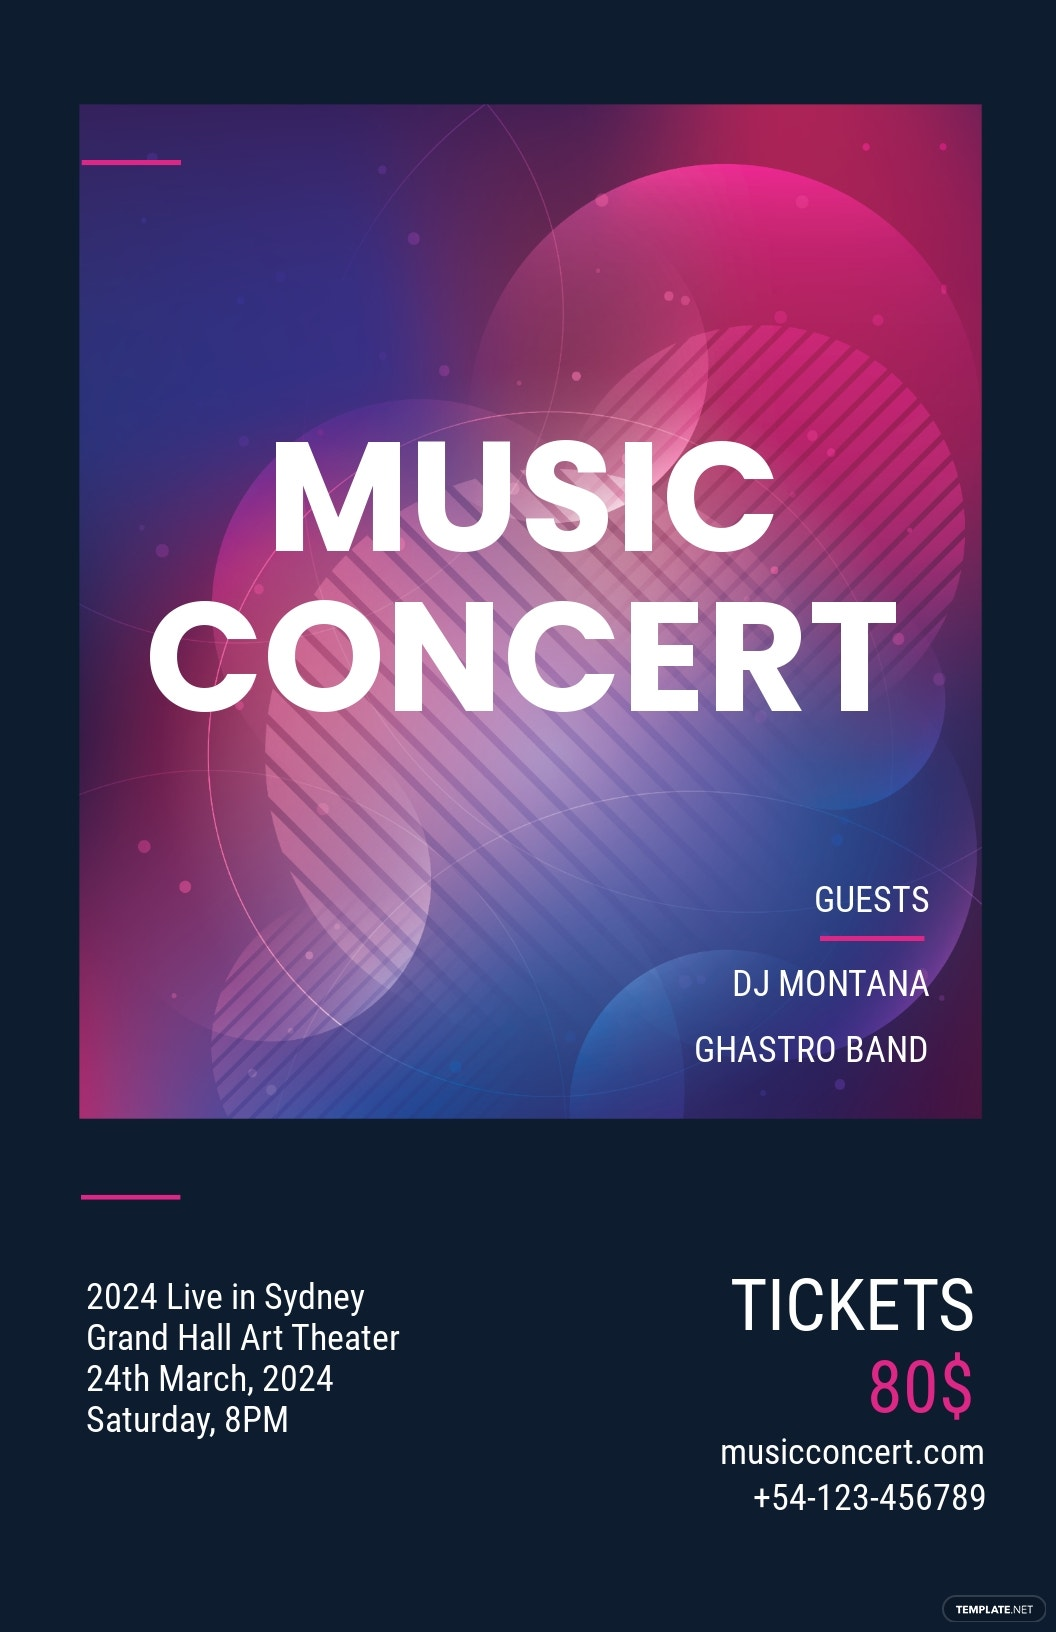 Free Music Concert Poster Template.jpe